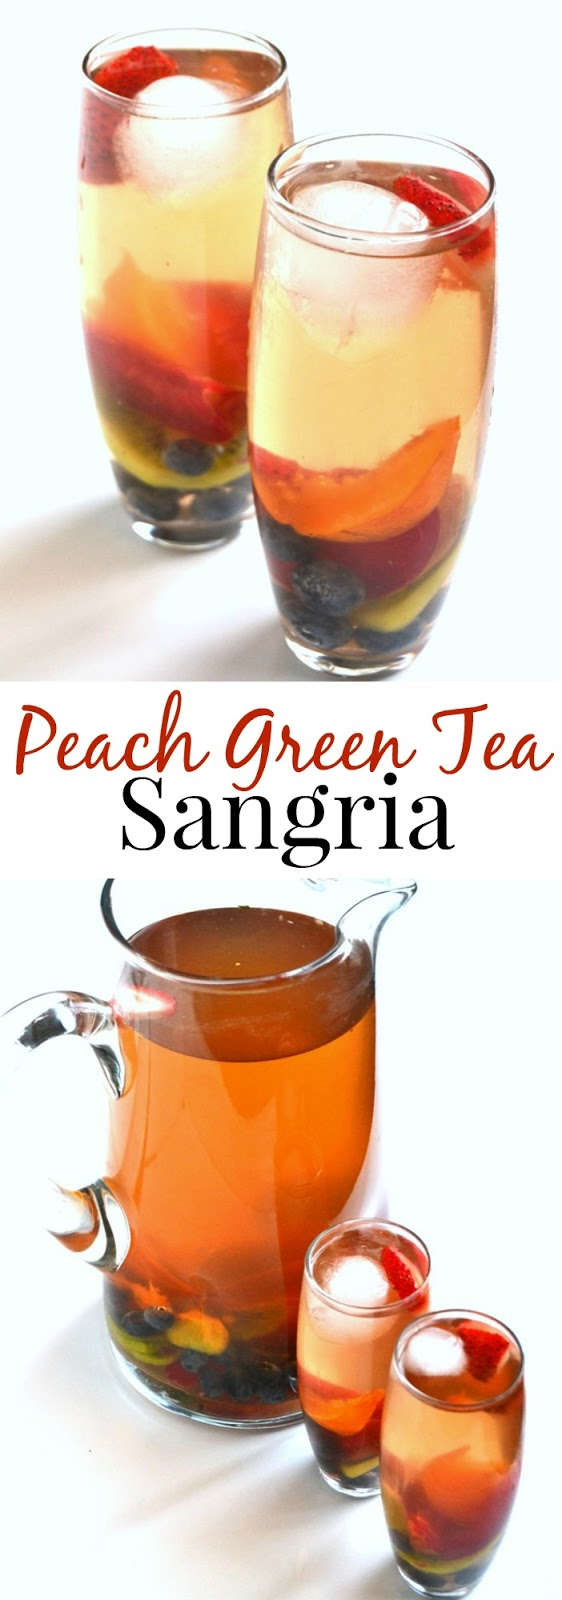 Peach Green Tea Sangria is easy to make and is customizable with your favorite kinds of fruit. Cool down with a iced glass of this fun beverage! www.nutritionistreviews.com